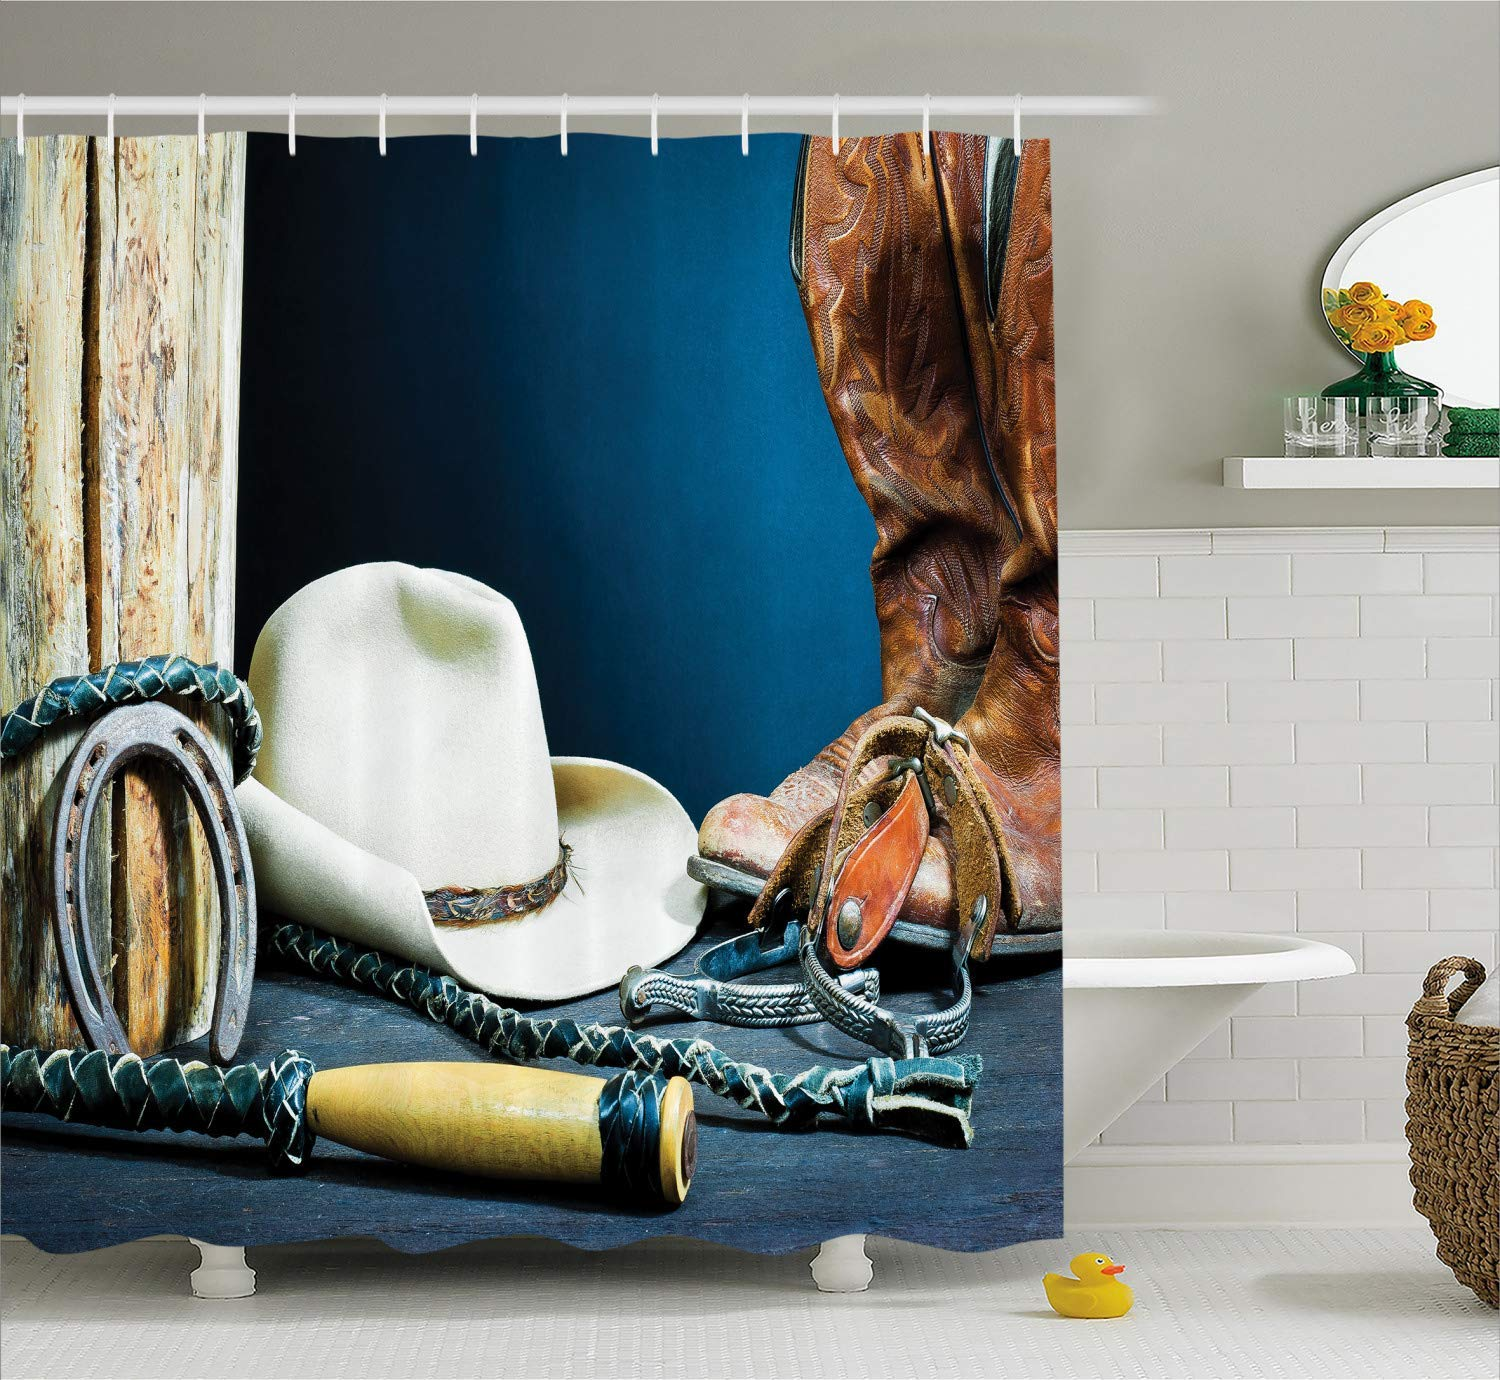 DIY Western Decor Shower Curtain, Equestrian Backdrop with Antique Horseshoe Hat Cowboy Texas Style, Fabric Polyester Waterproof 12 Stainless Steel Hook, 72 x 72 Inches Blue Brown